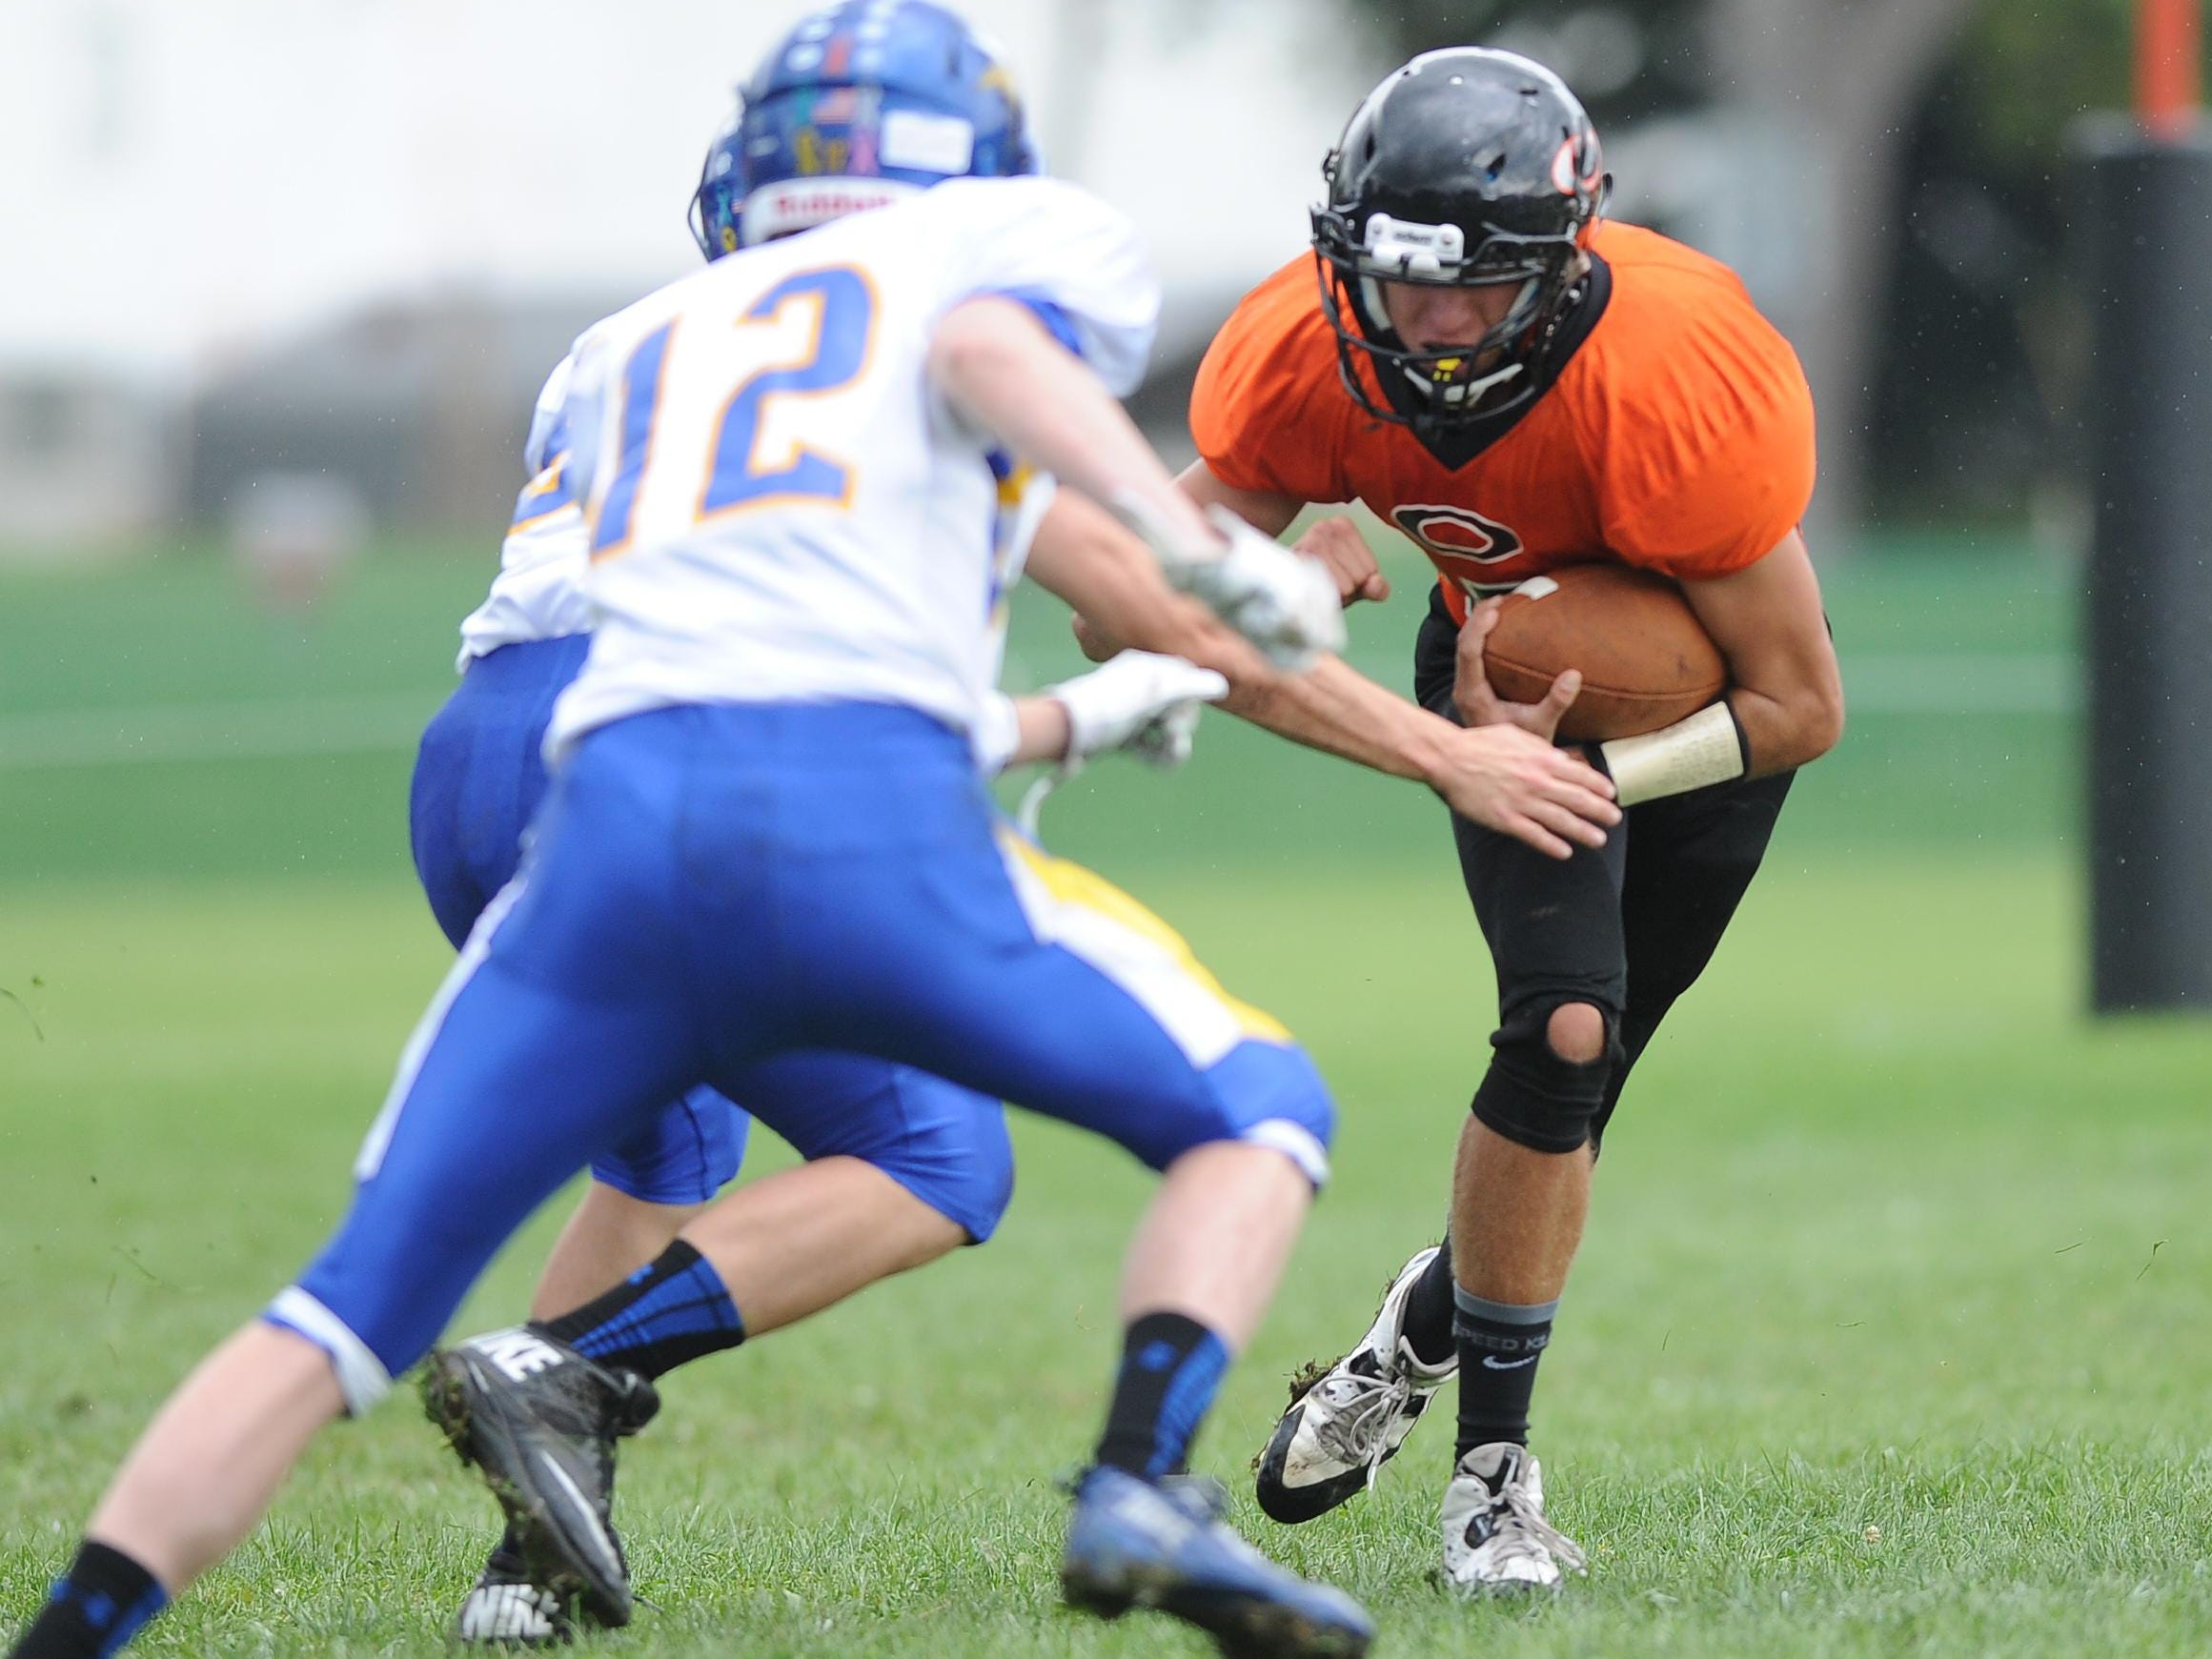 Oakfield's Tyler Burbach is entering his fourth year as the team's starting quarterback.